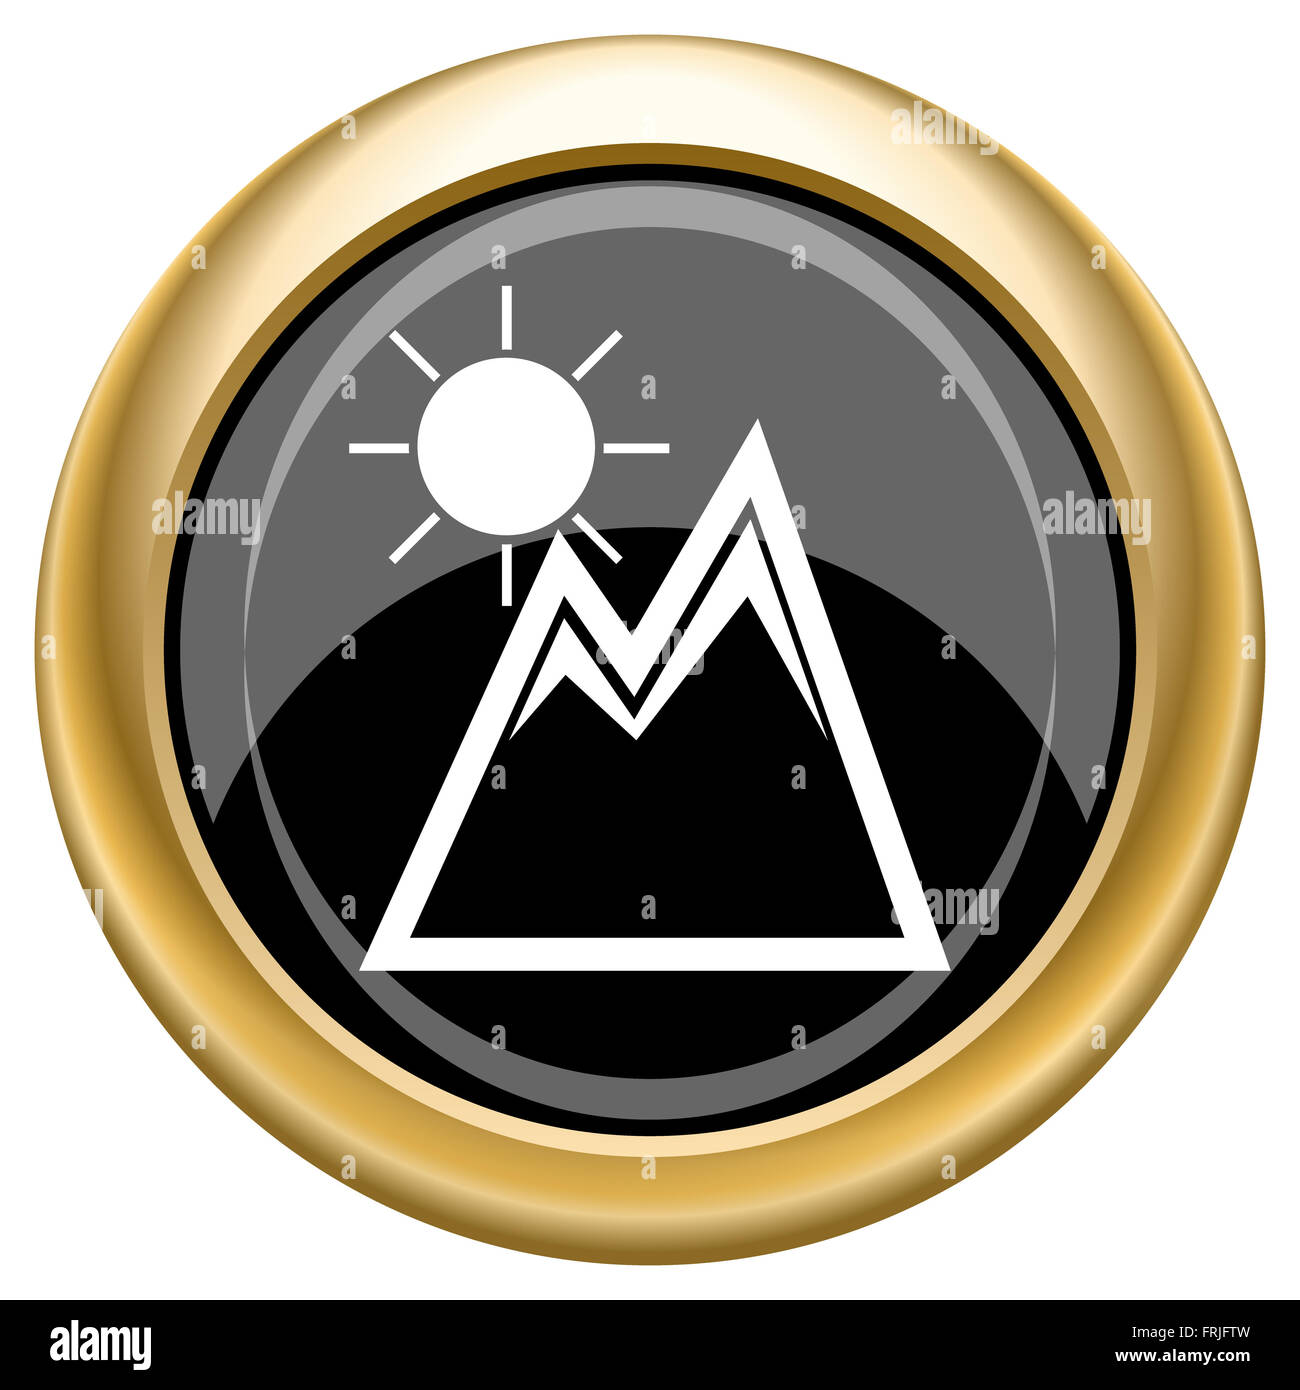 Shiny glossy icon with white design on black and gold background - Stock Image